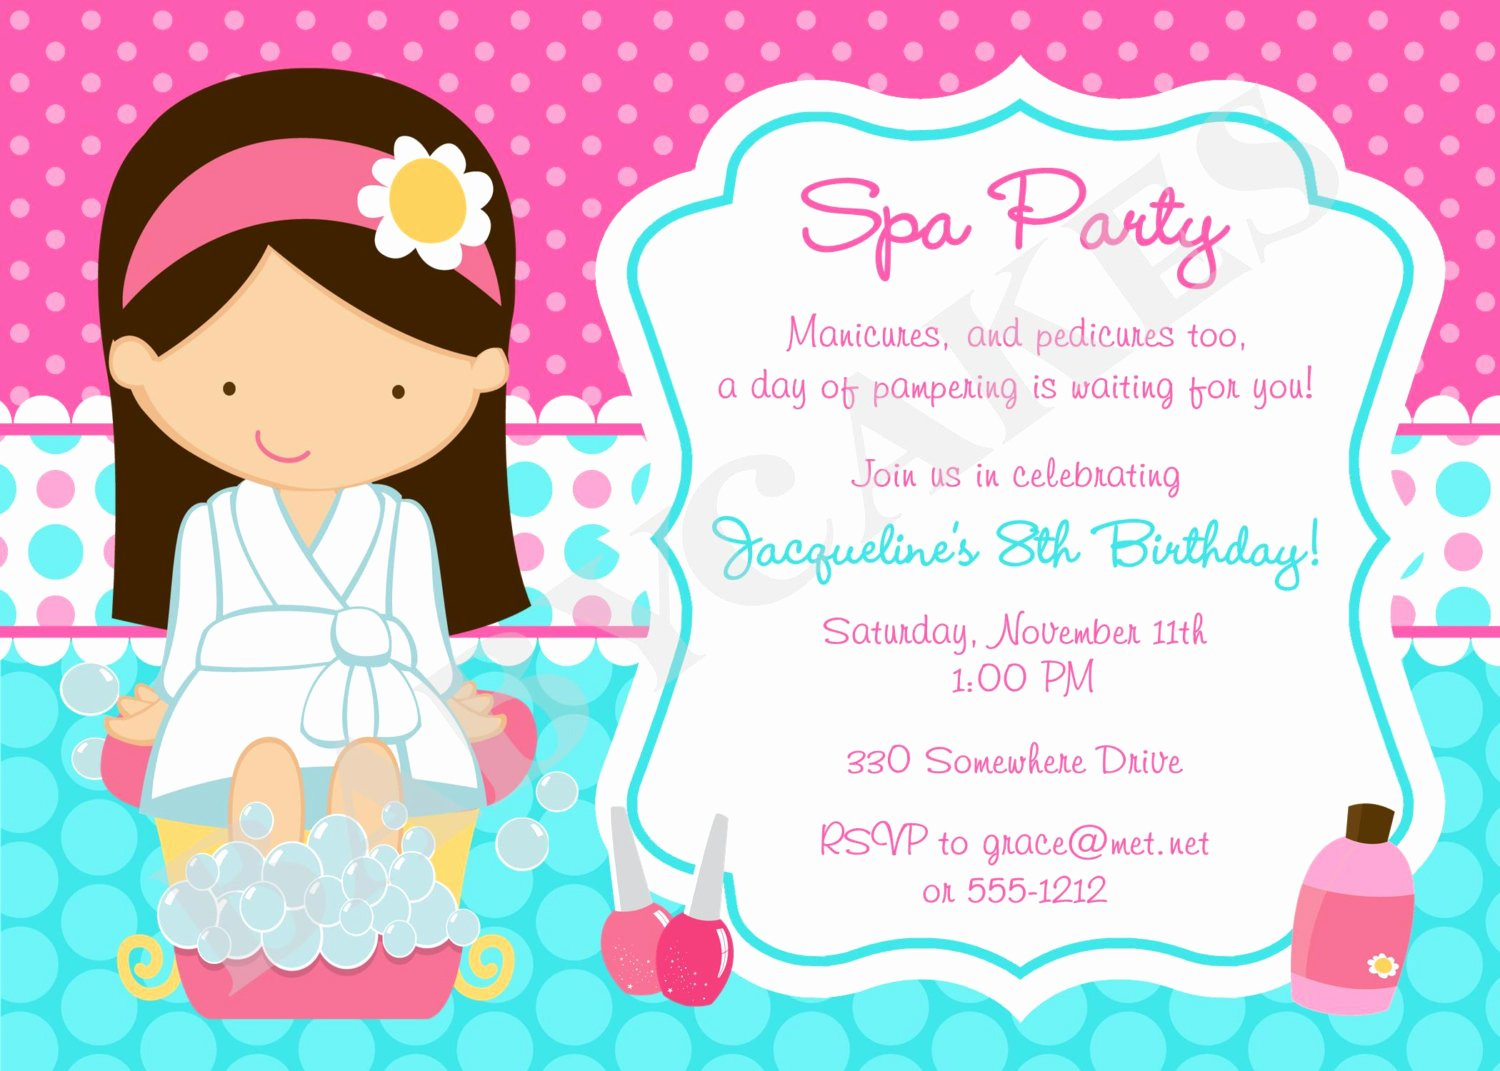 Spa Party Invitation Wording Inspirational Spa Party Invitation Diy Print Your Own Choose by Jcbabycakes